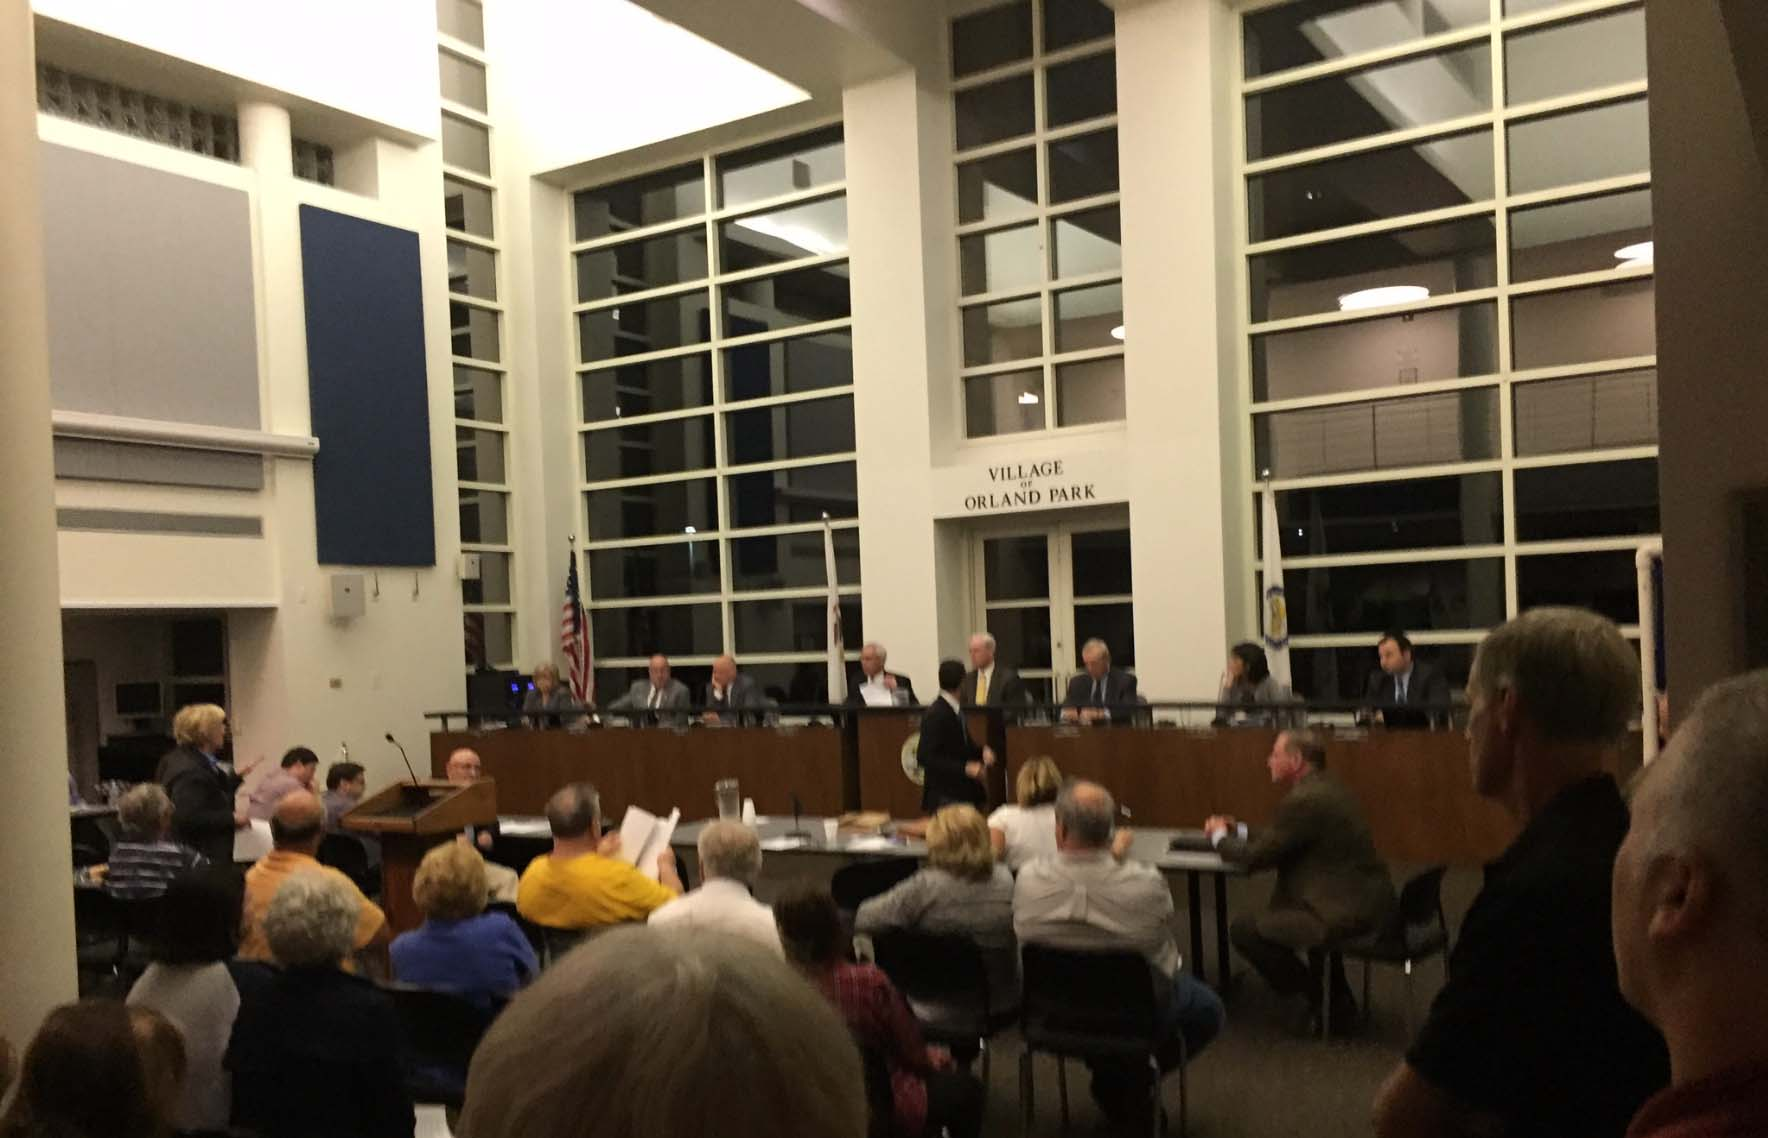 Orland Park Board arrogantly ignores voters will